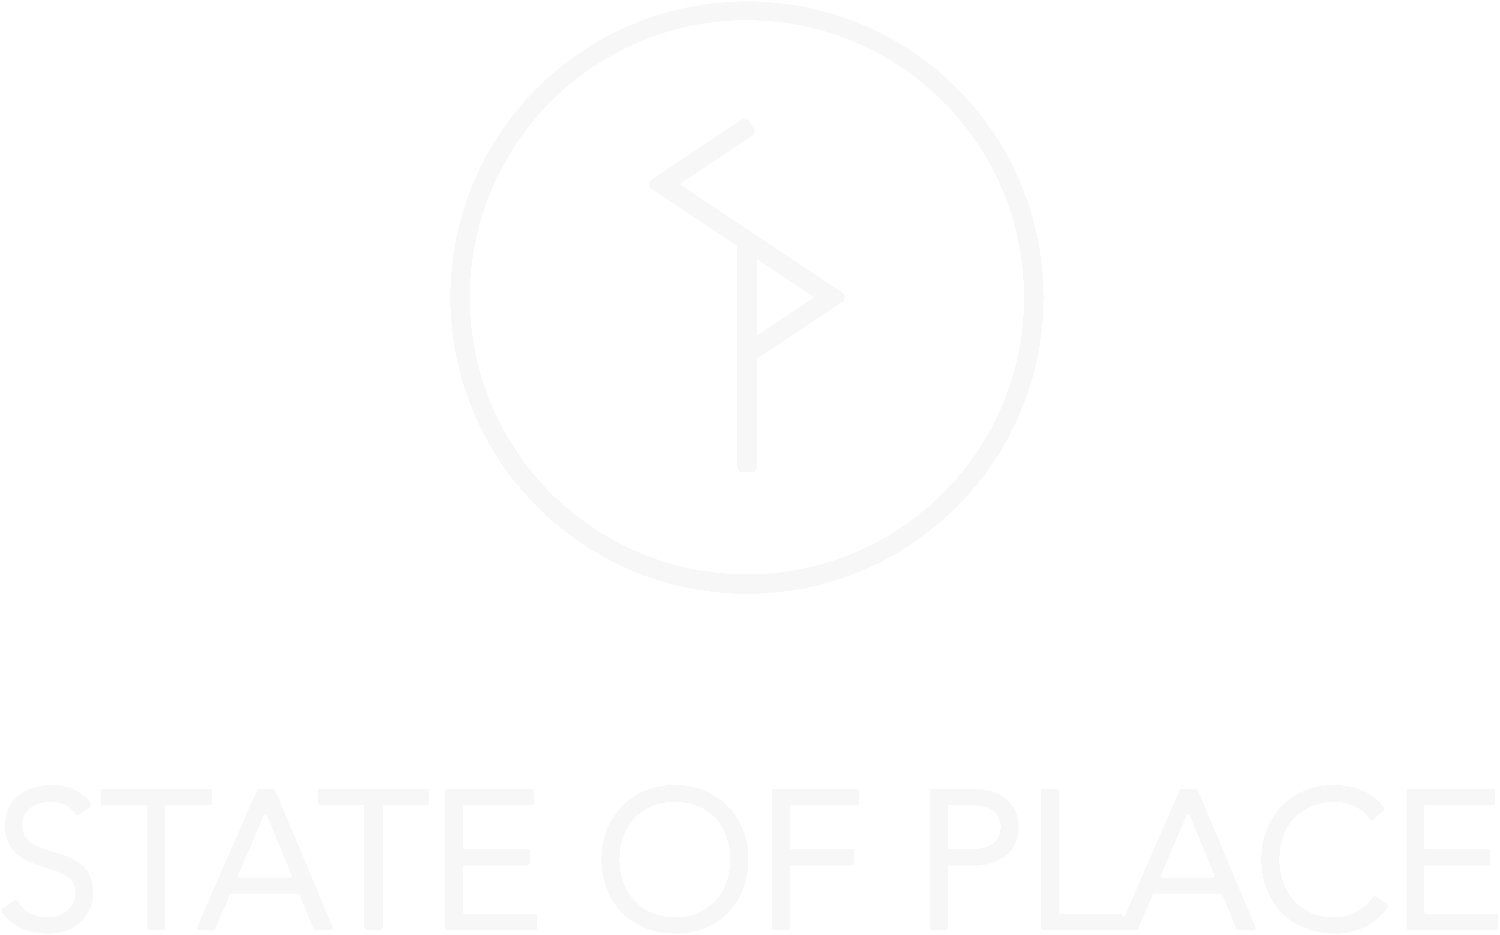 State Of Place